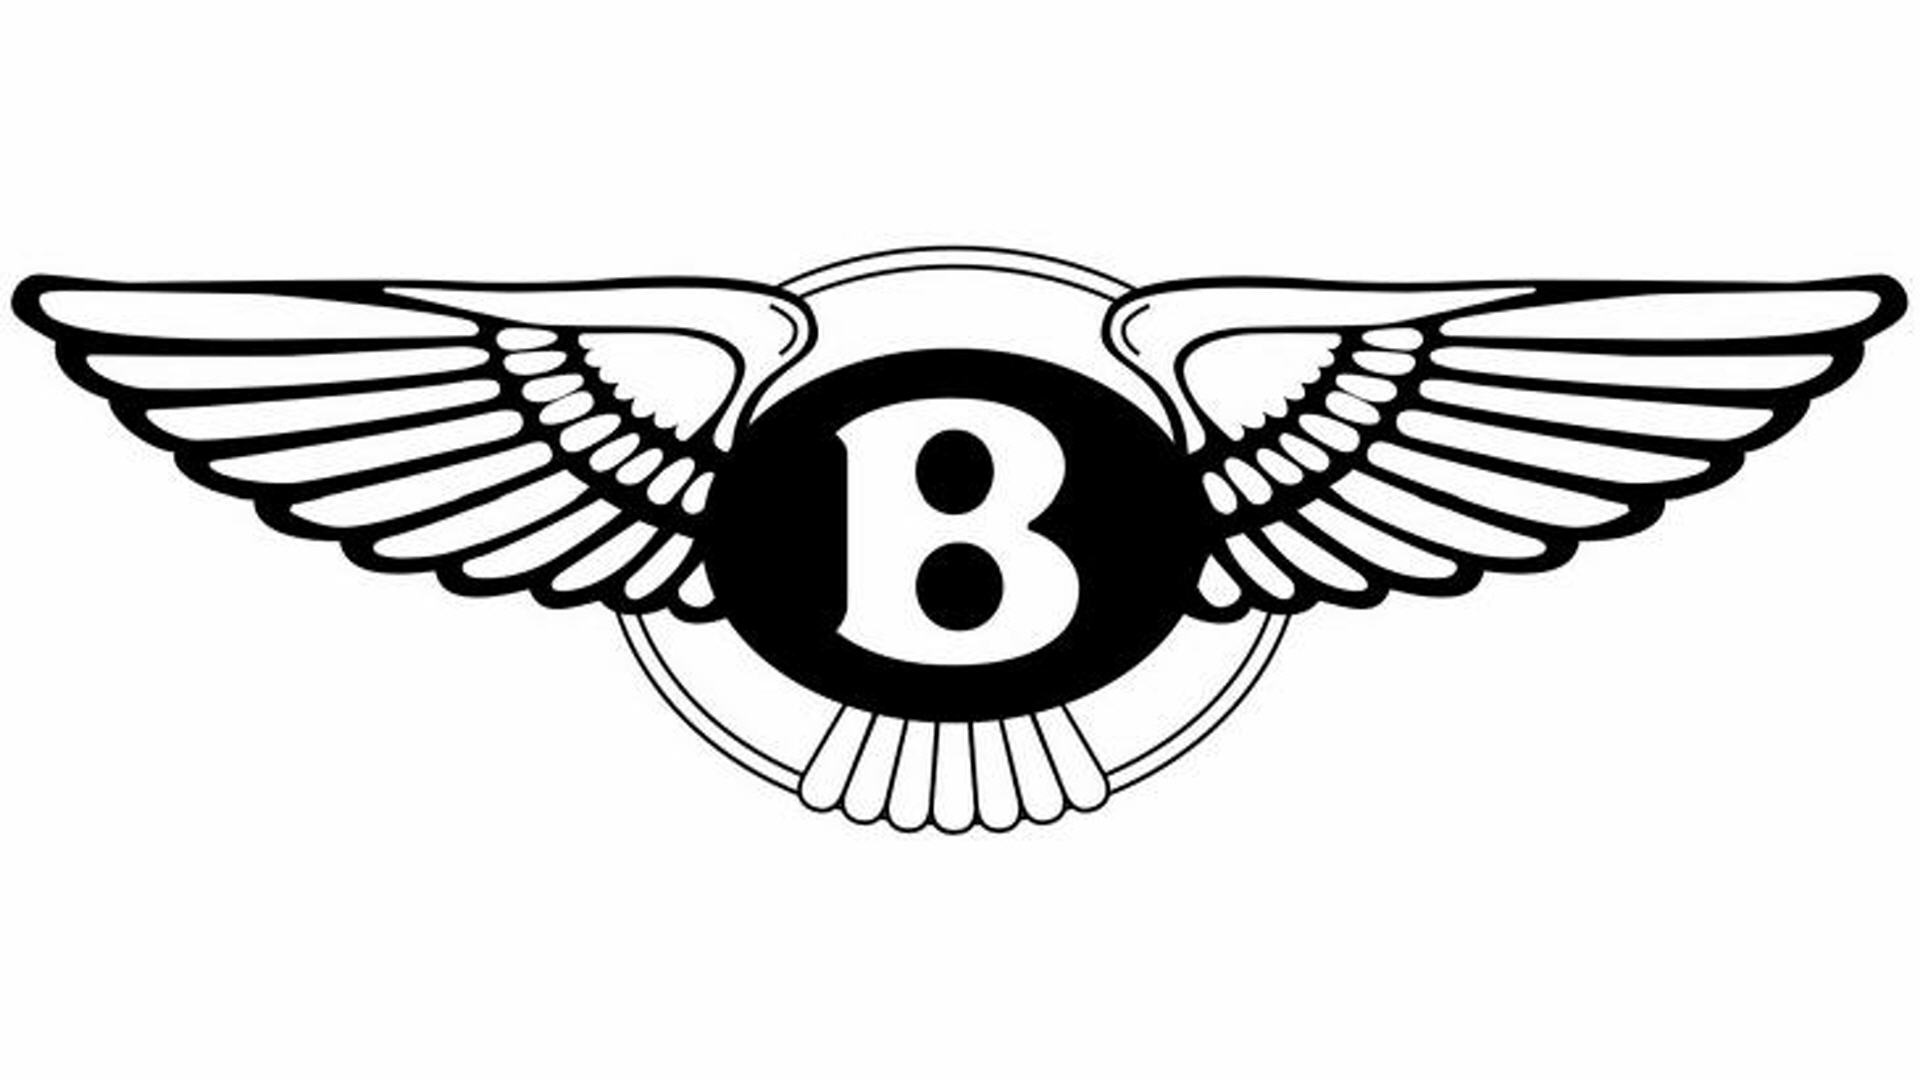 Bentley Logo Wallpapers besides 537124693030150092 moreover Showthread as well Coloring Pages 26506 additionally Mustang Coloring Pages. on porsche 918 spyder 2015